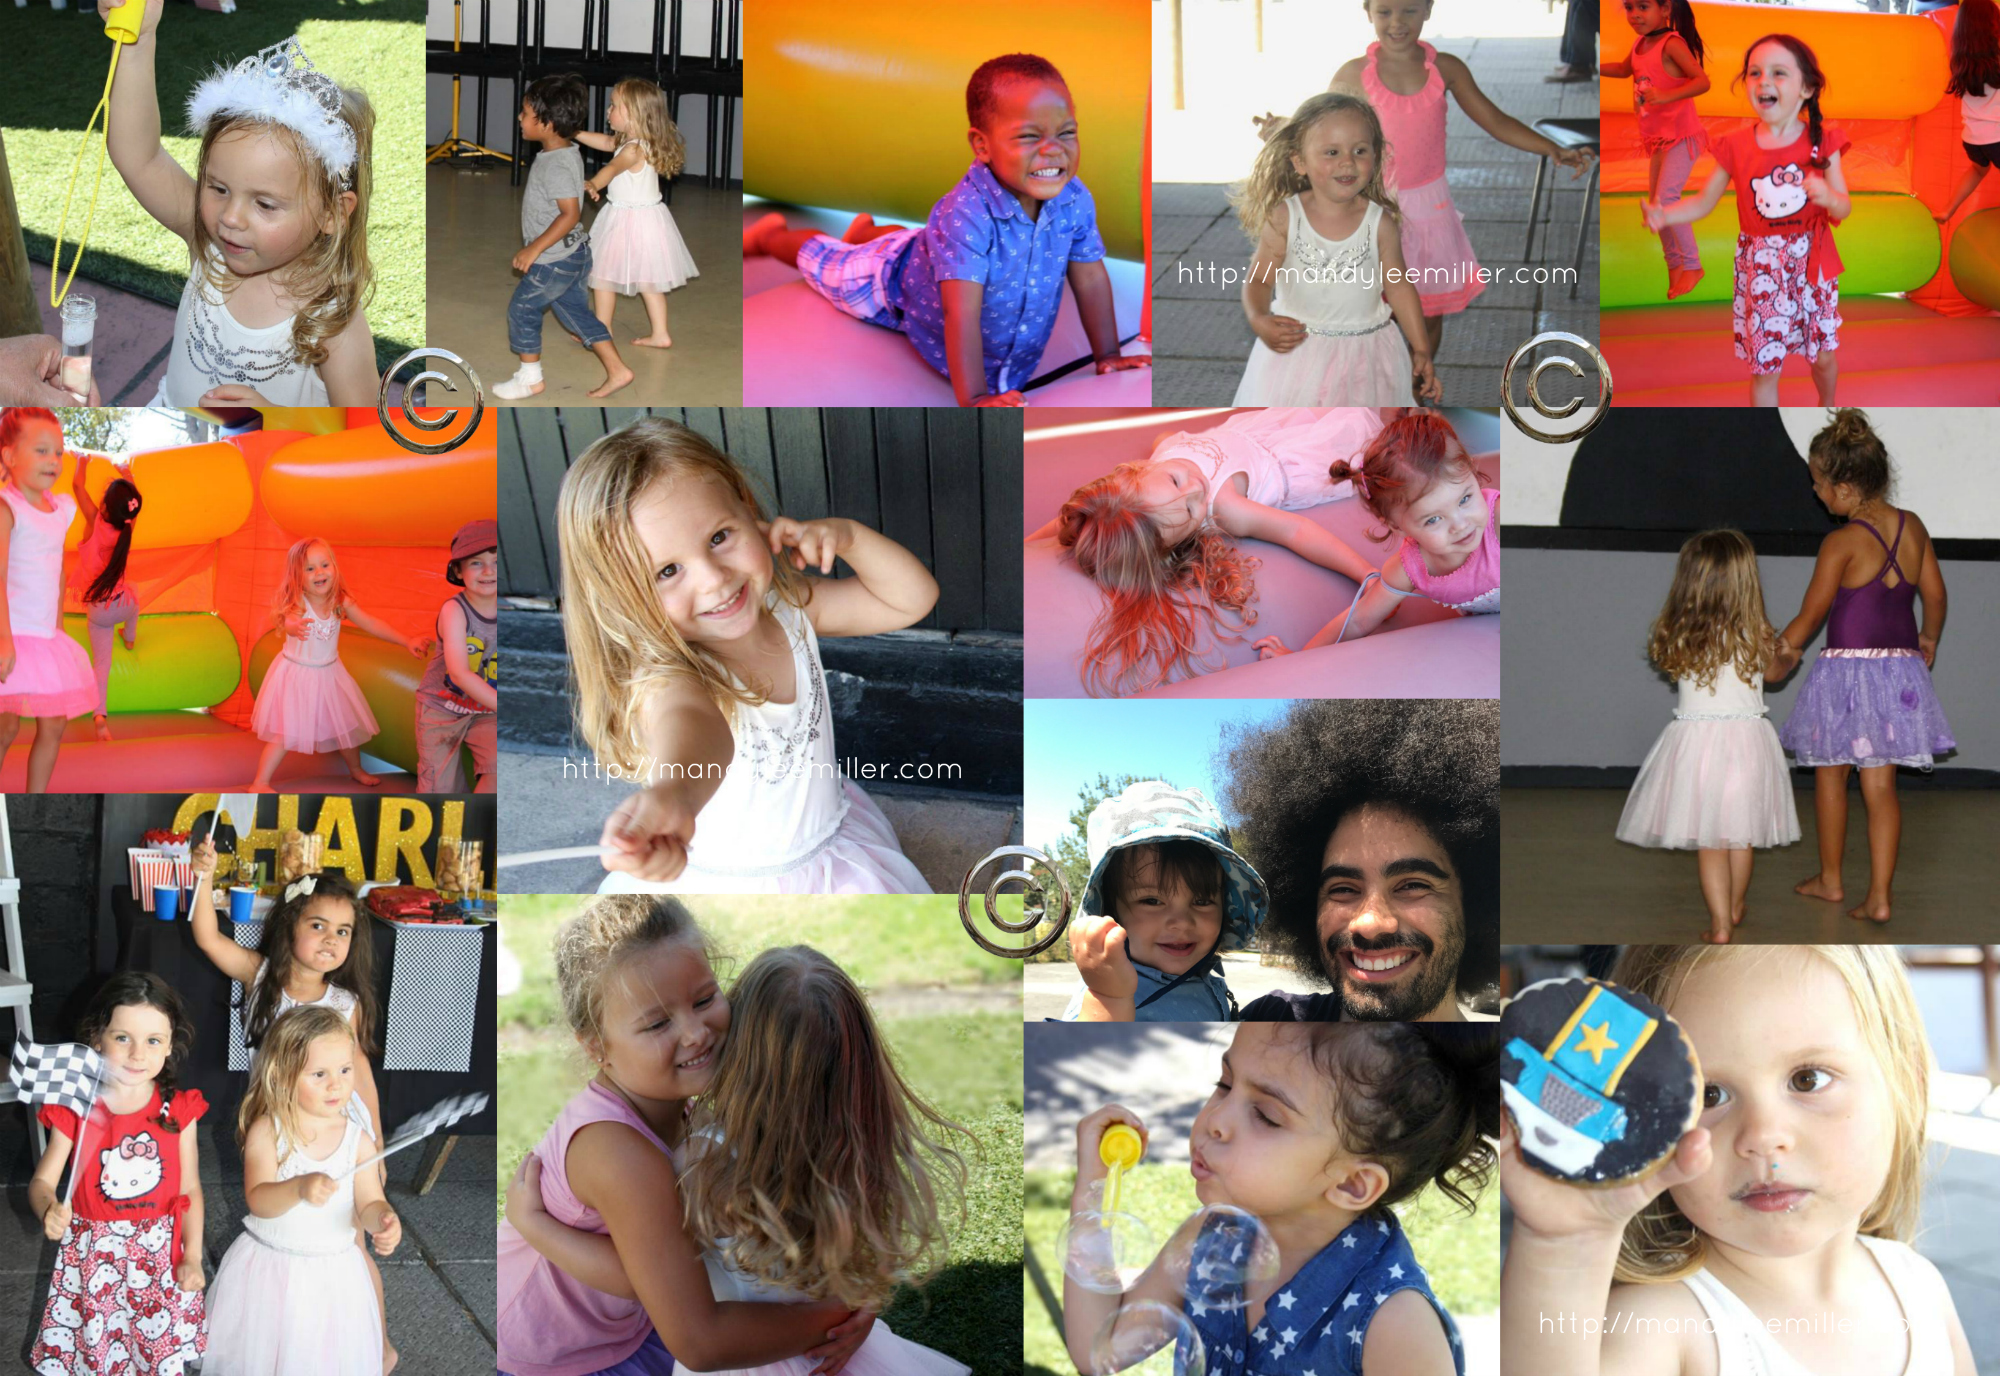 A third birthday party collage